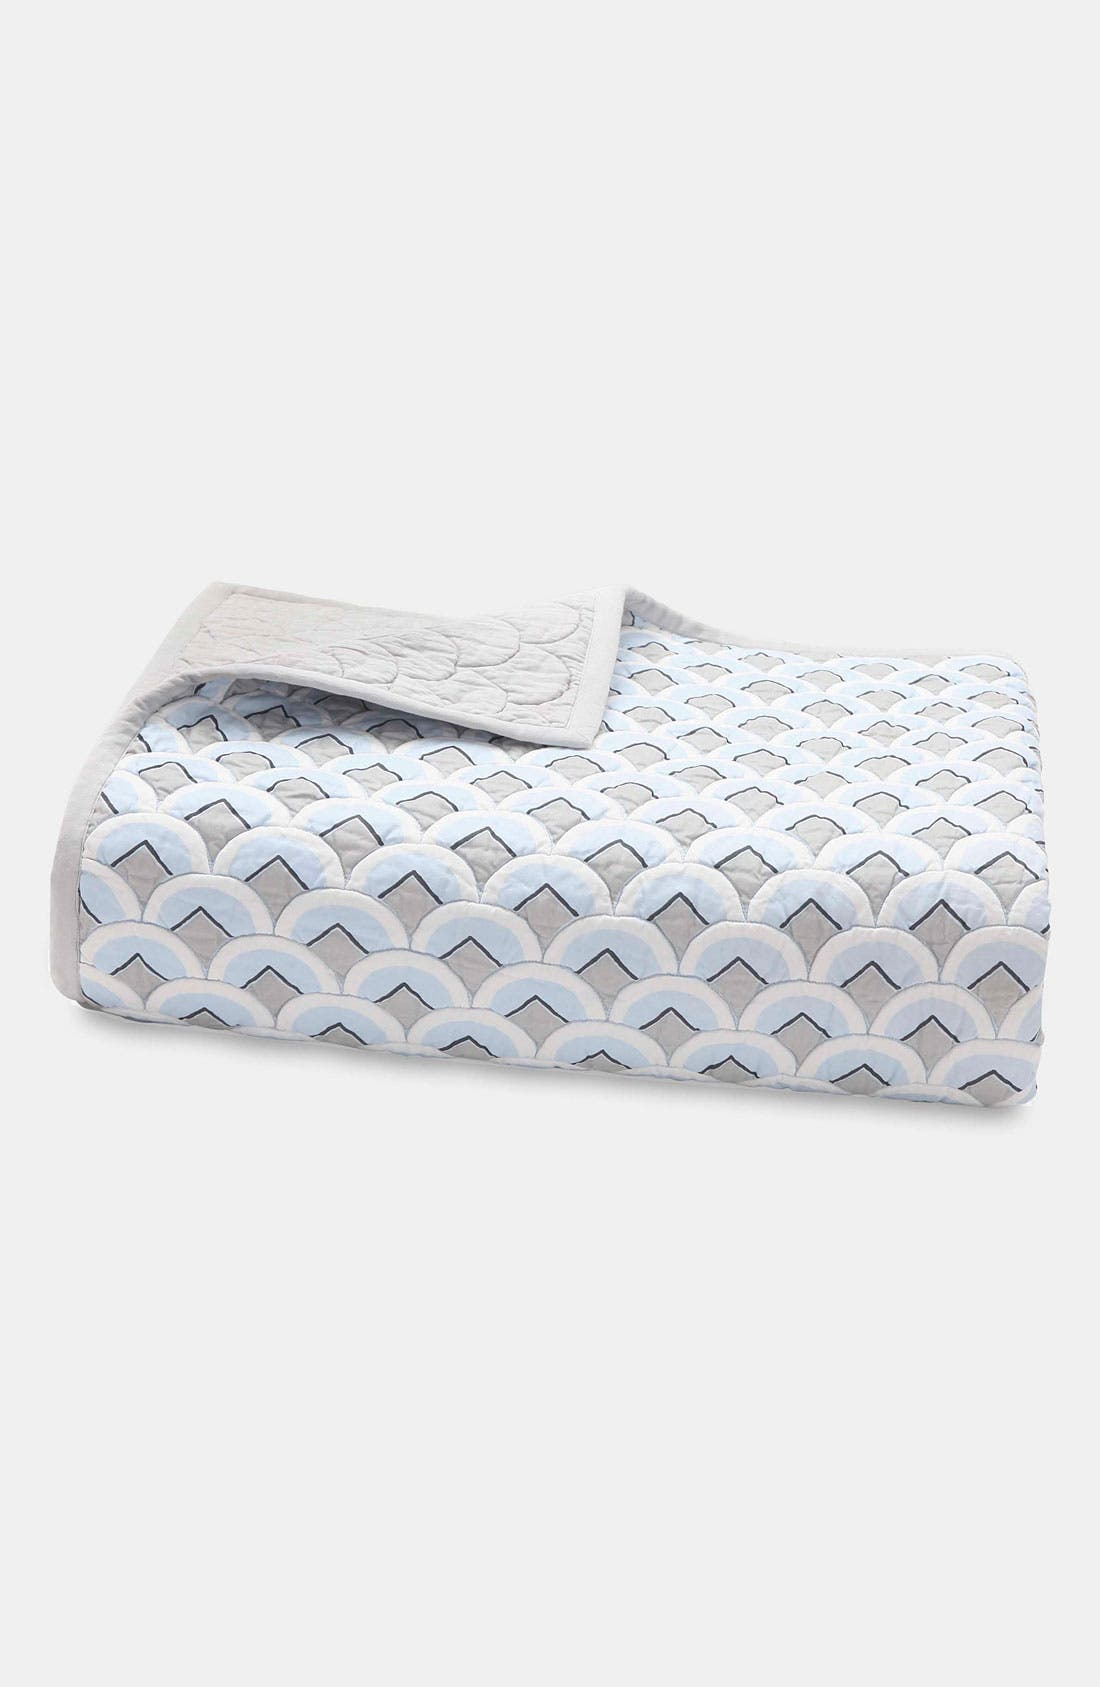 Alternate Image 1 Selected - kate spade new york 'deco geo' 400 thread count quilt